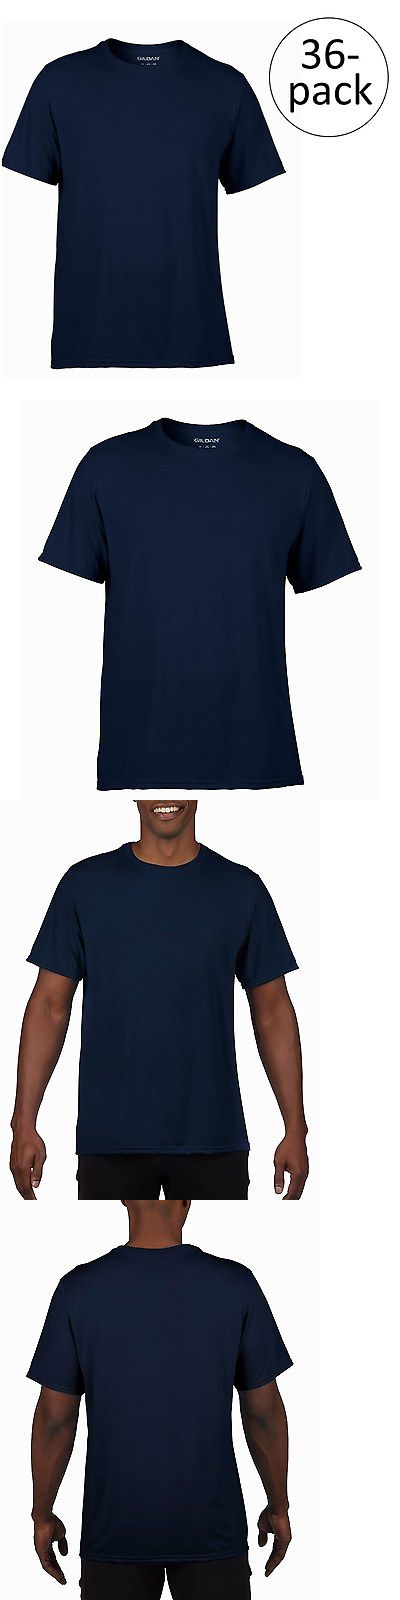 T-Shirts 15687: 36) New Gildan Dry Fit Mens Small S Adult Short Sleeve Performance T-Shirt Navy -> BUY IT NOW ONLY: $50.99 on eBay!